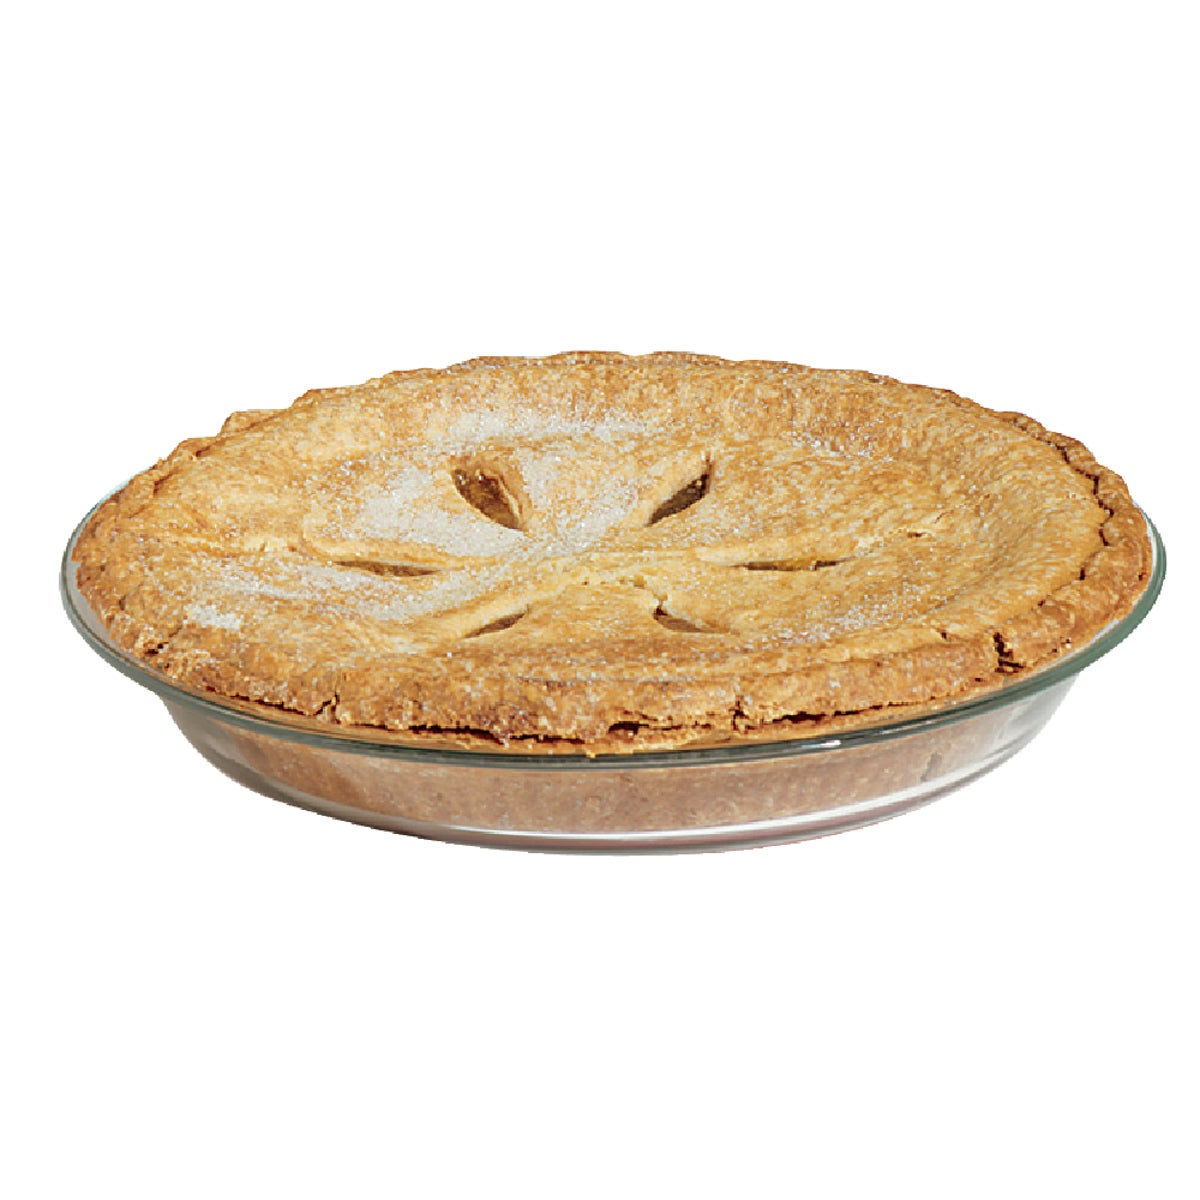 "9"" PIE PLATE - 6001003 by World Kitchen"